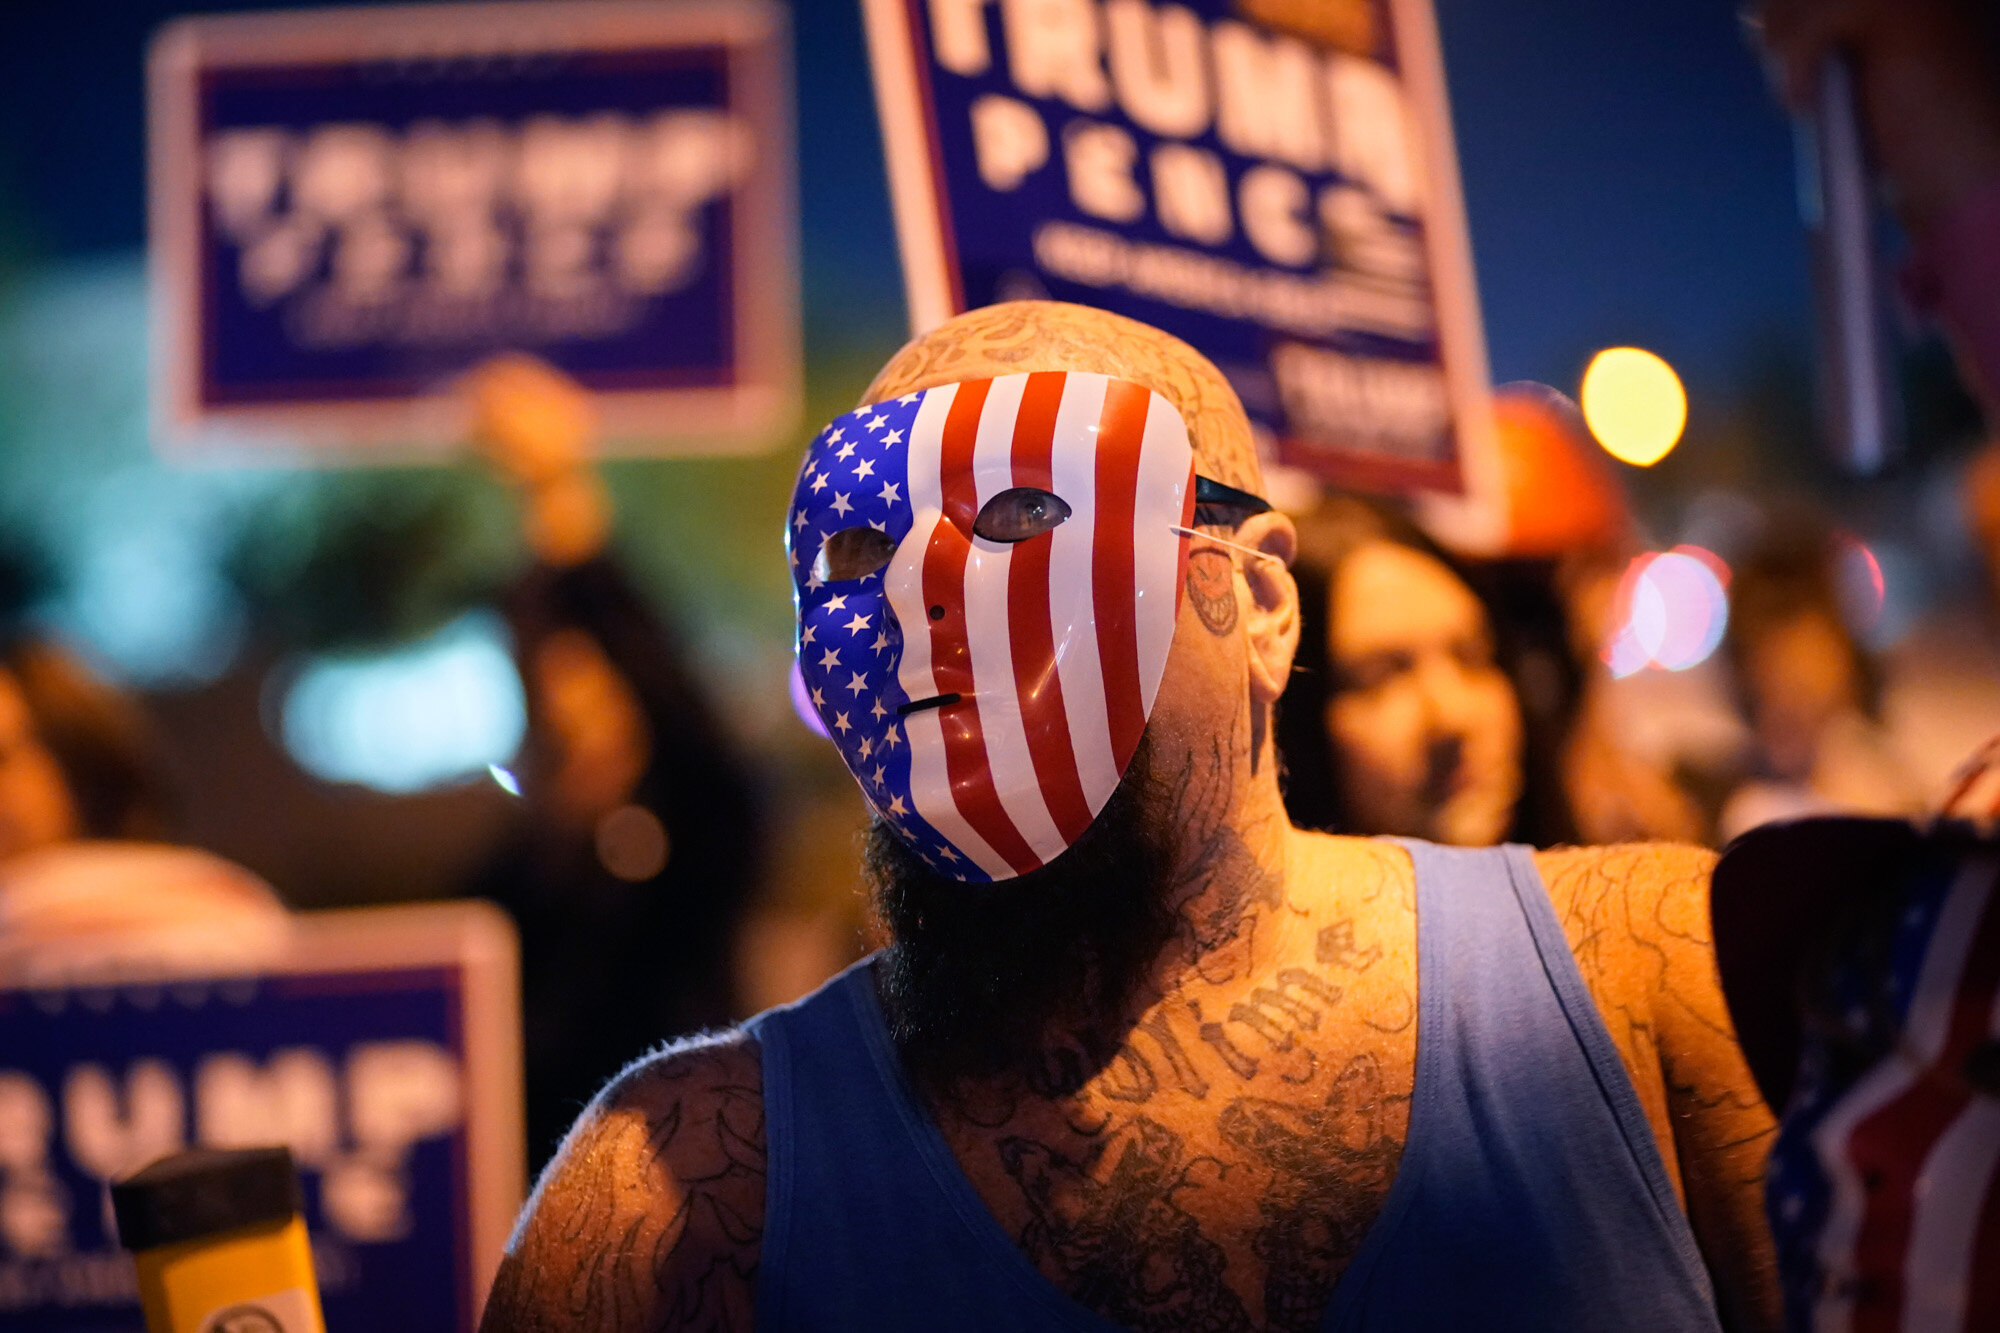 Supporters of President Donald Trump protest the Nevada vote in front of the Clark County Election Department in Las Vegas on Nov. 4, 2020. (AP Photo/John Locher)